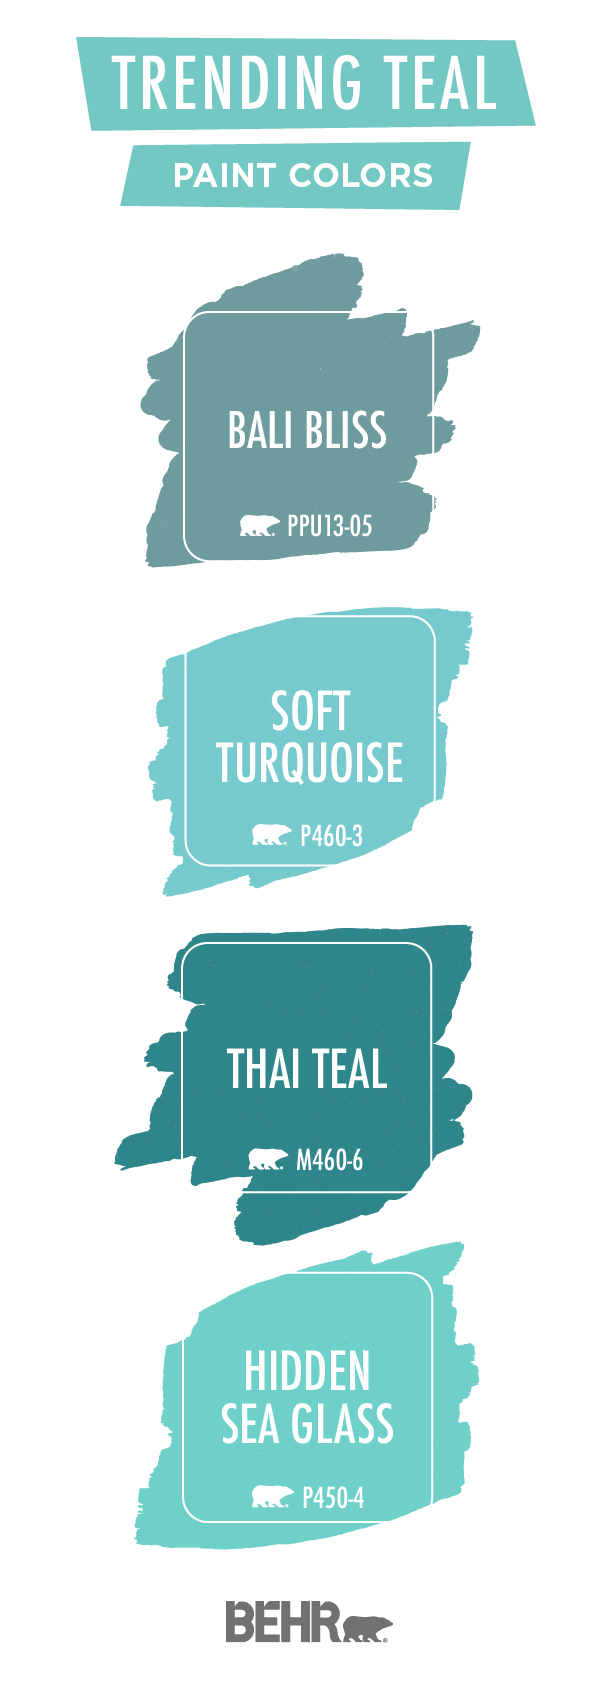 Teal images